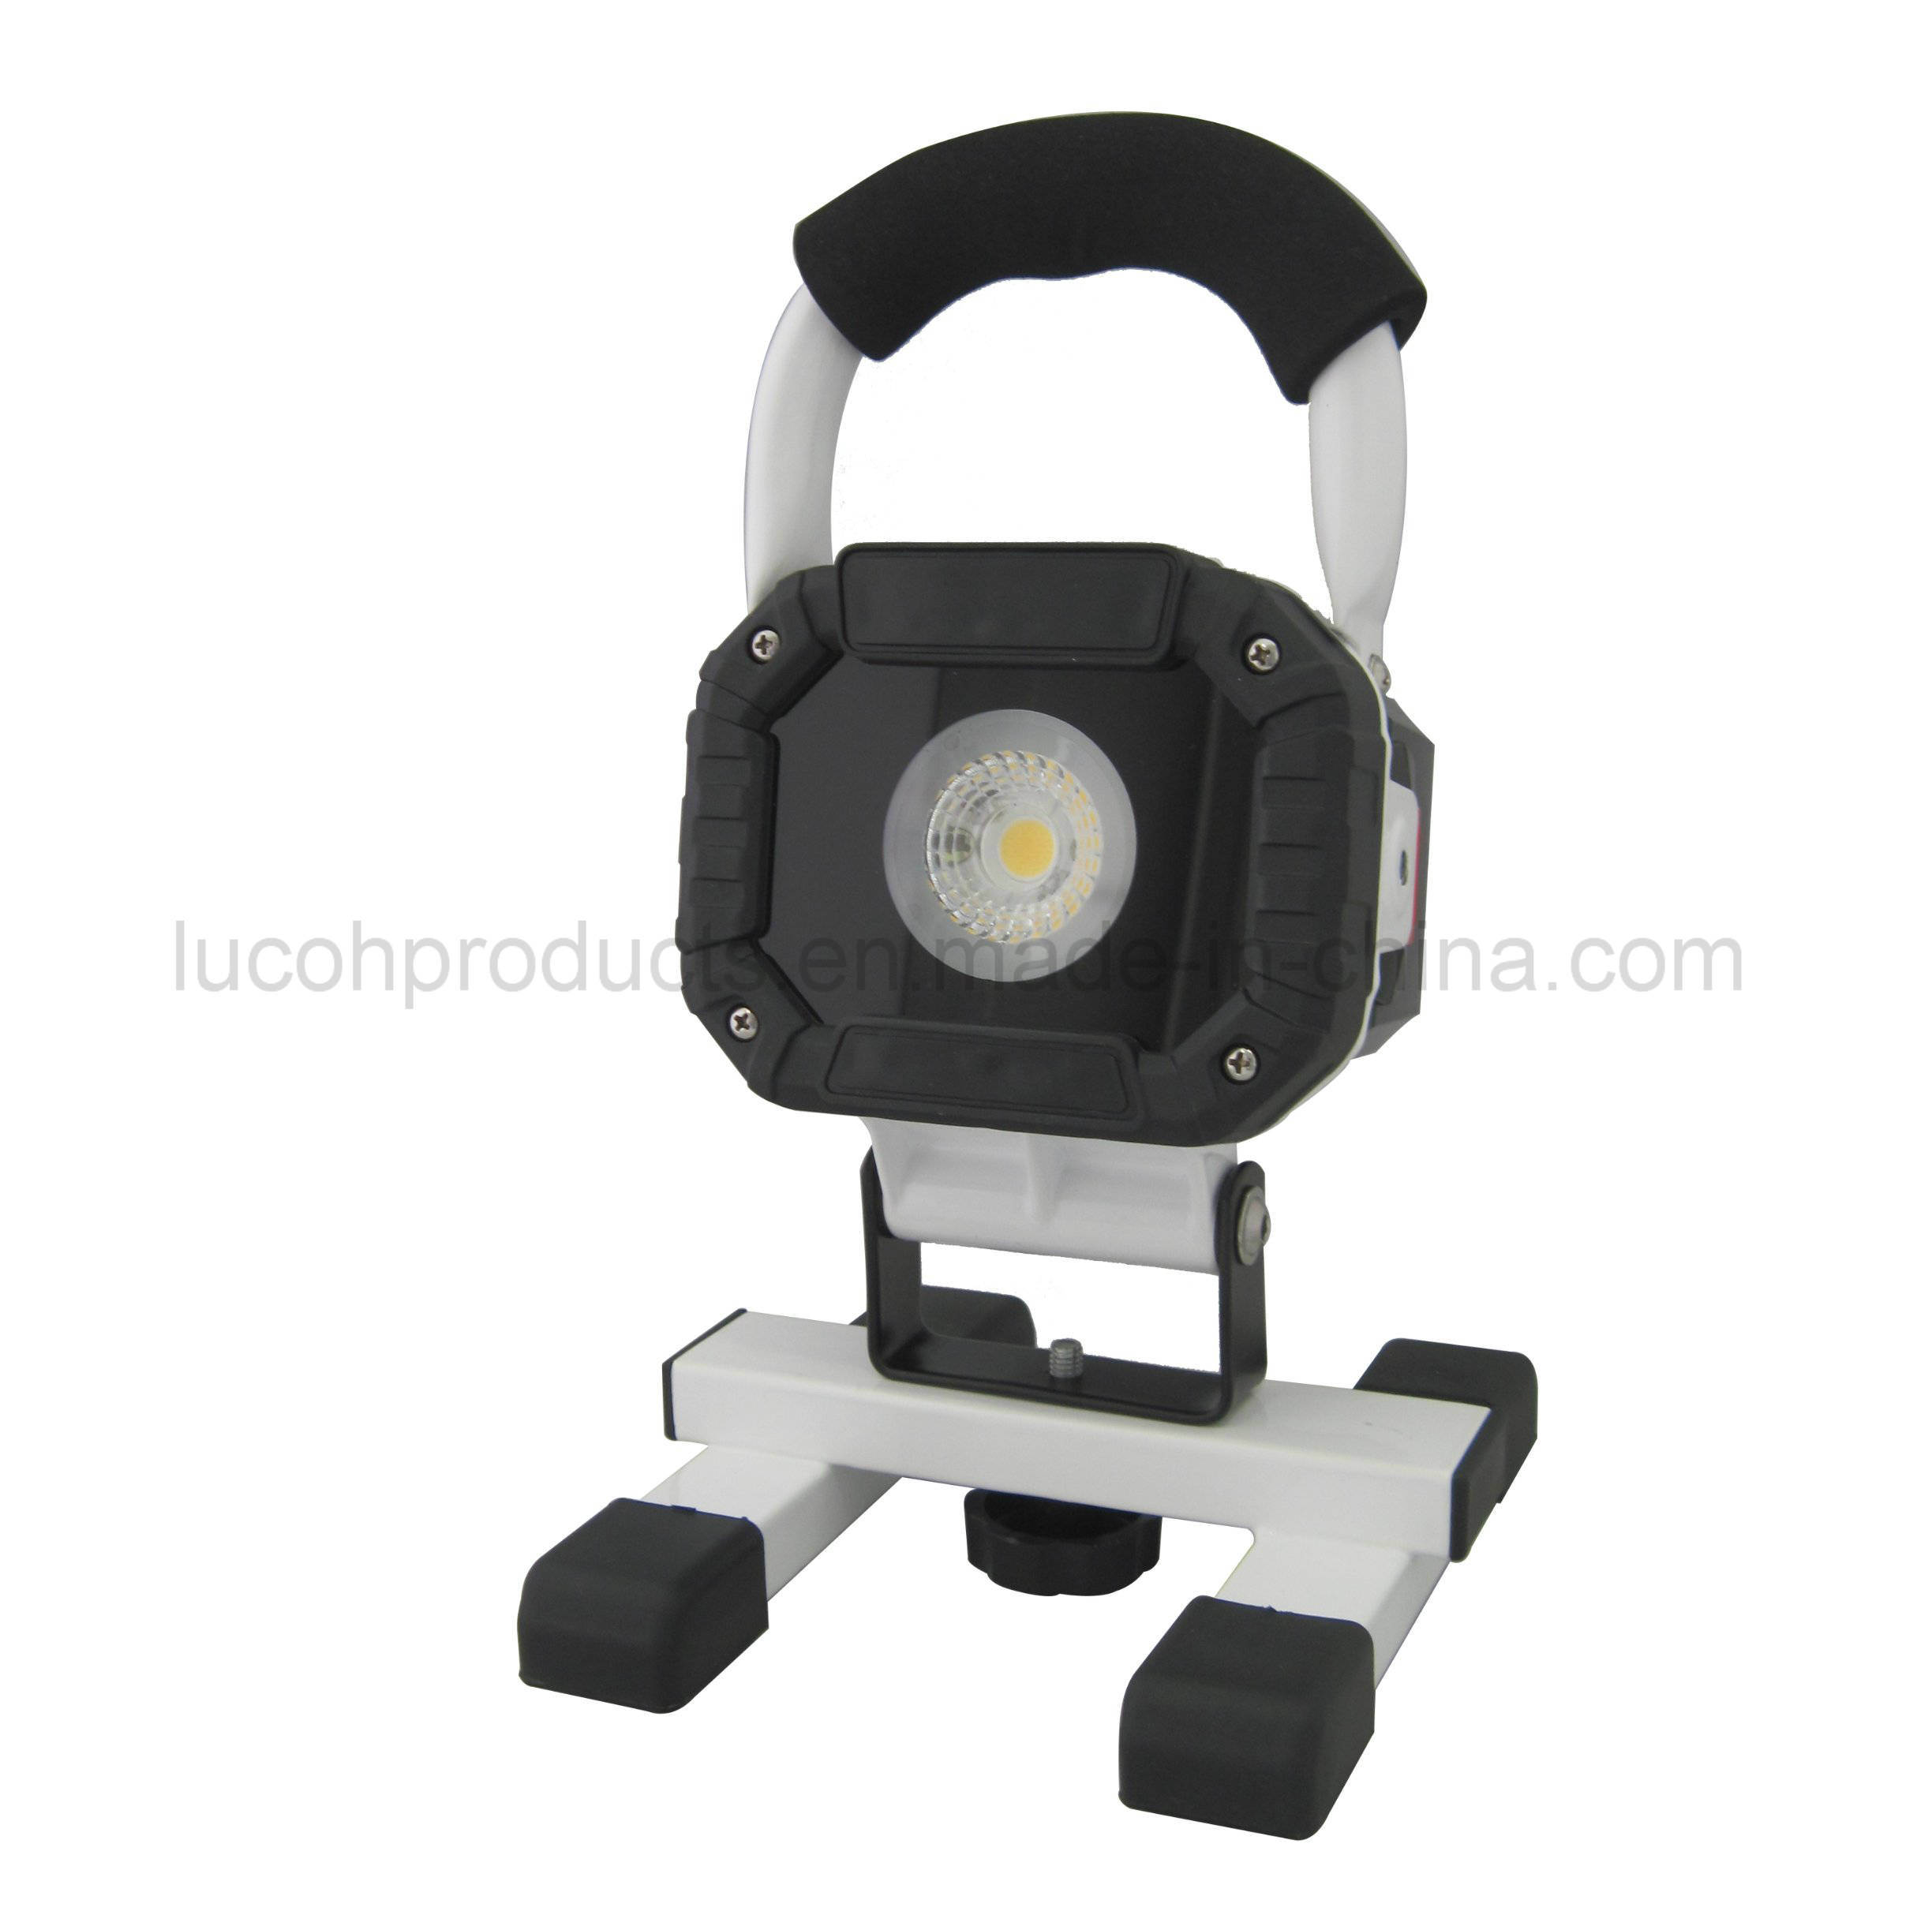 stamping flood watt led pro lite copy cob light work products rechargeable alert